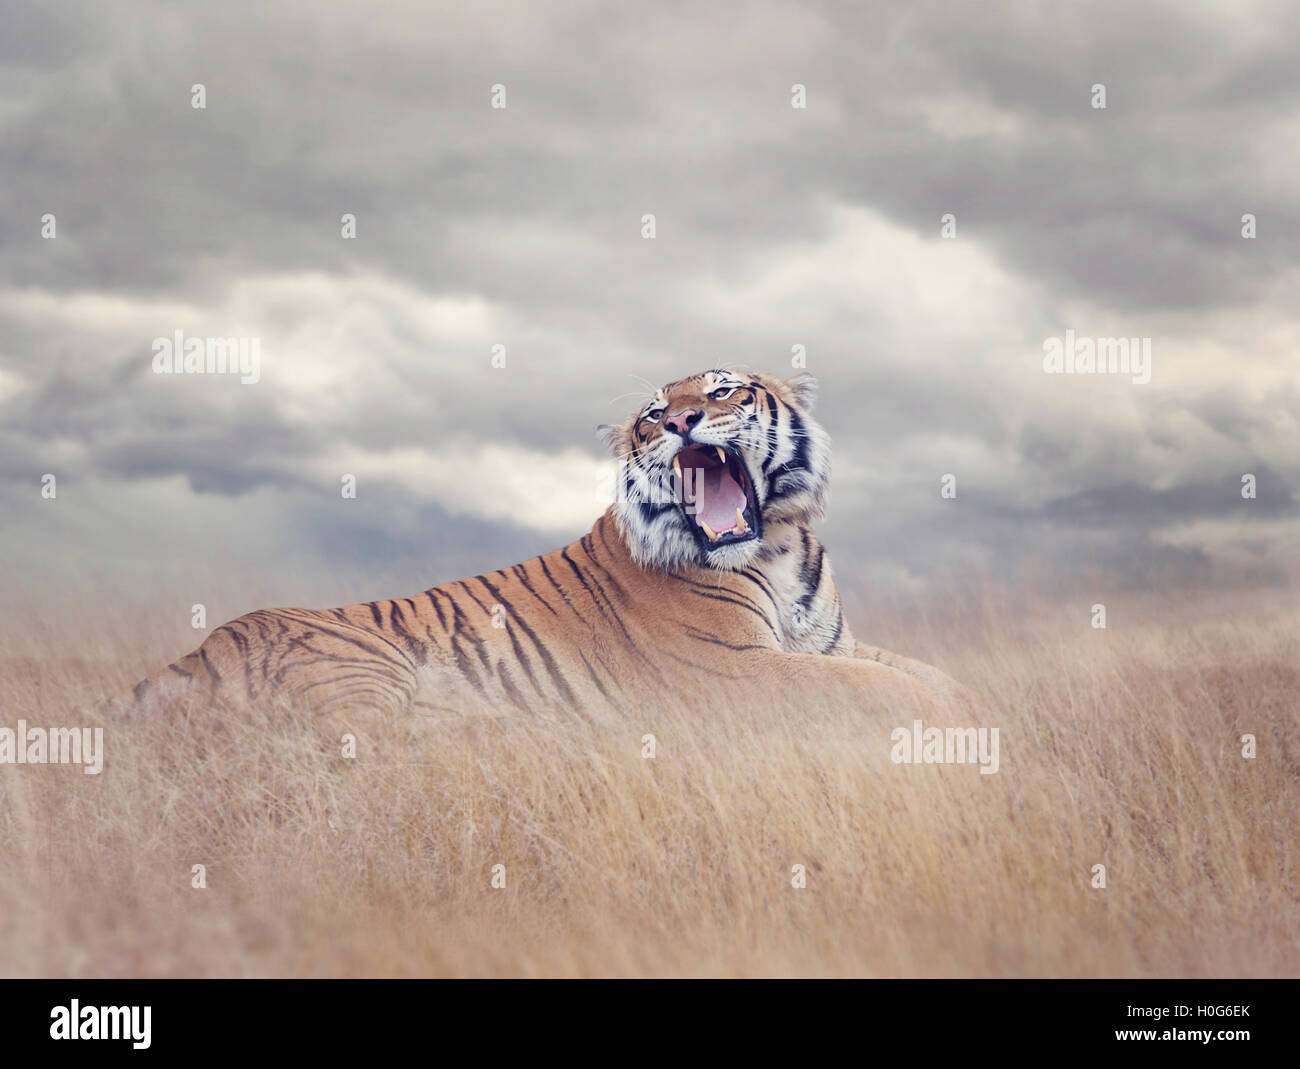 Bengal Tiger Resting in the Grass and Roaring - Stock Image